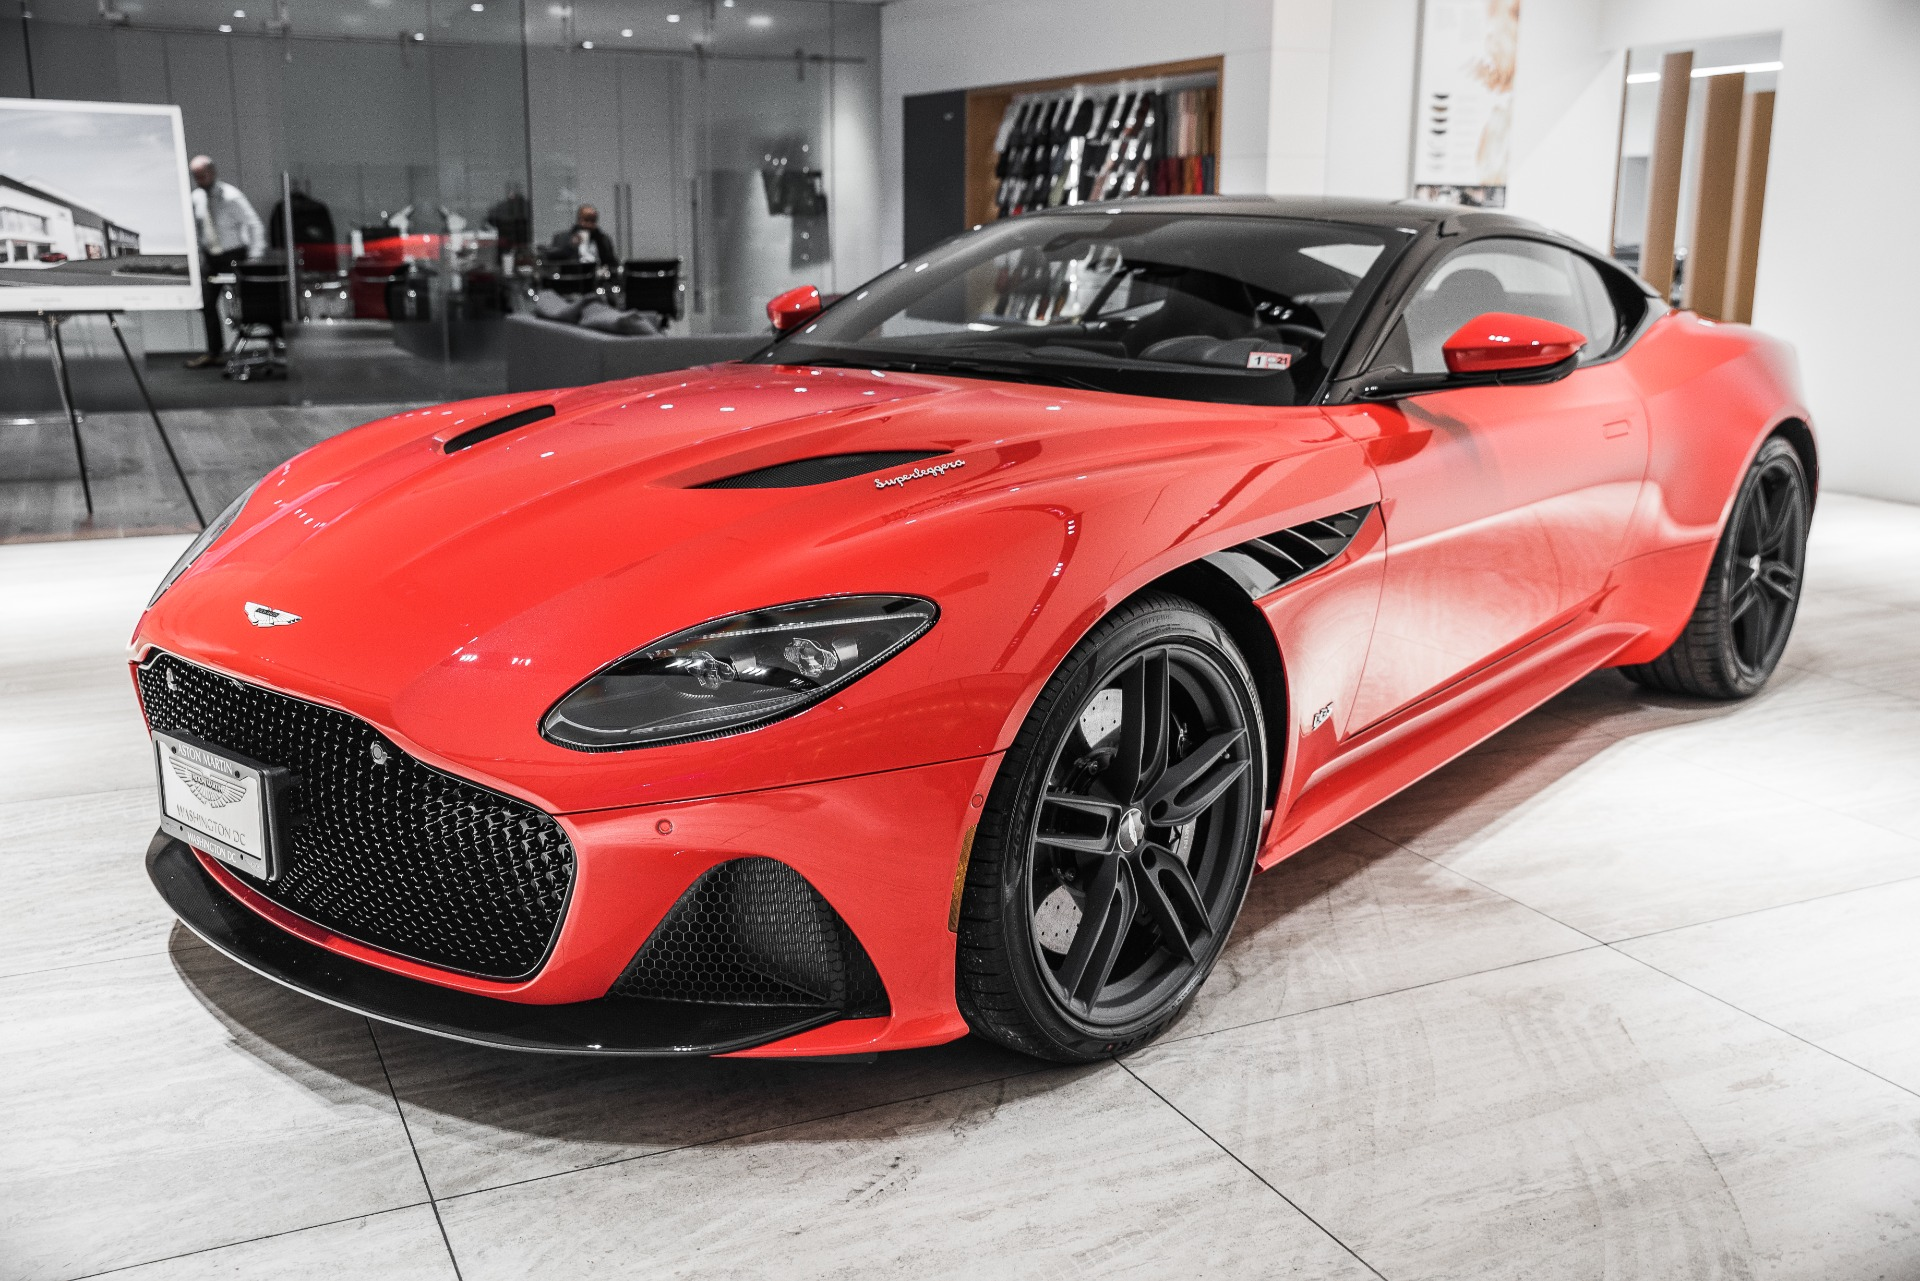 2020 Aston Martin Dbs Superleggera Stock 20nr01668 For Sale Near Vienna Va Va Aston Martin Dealer